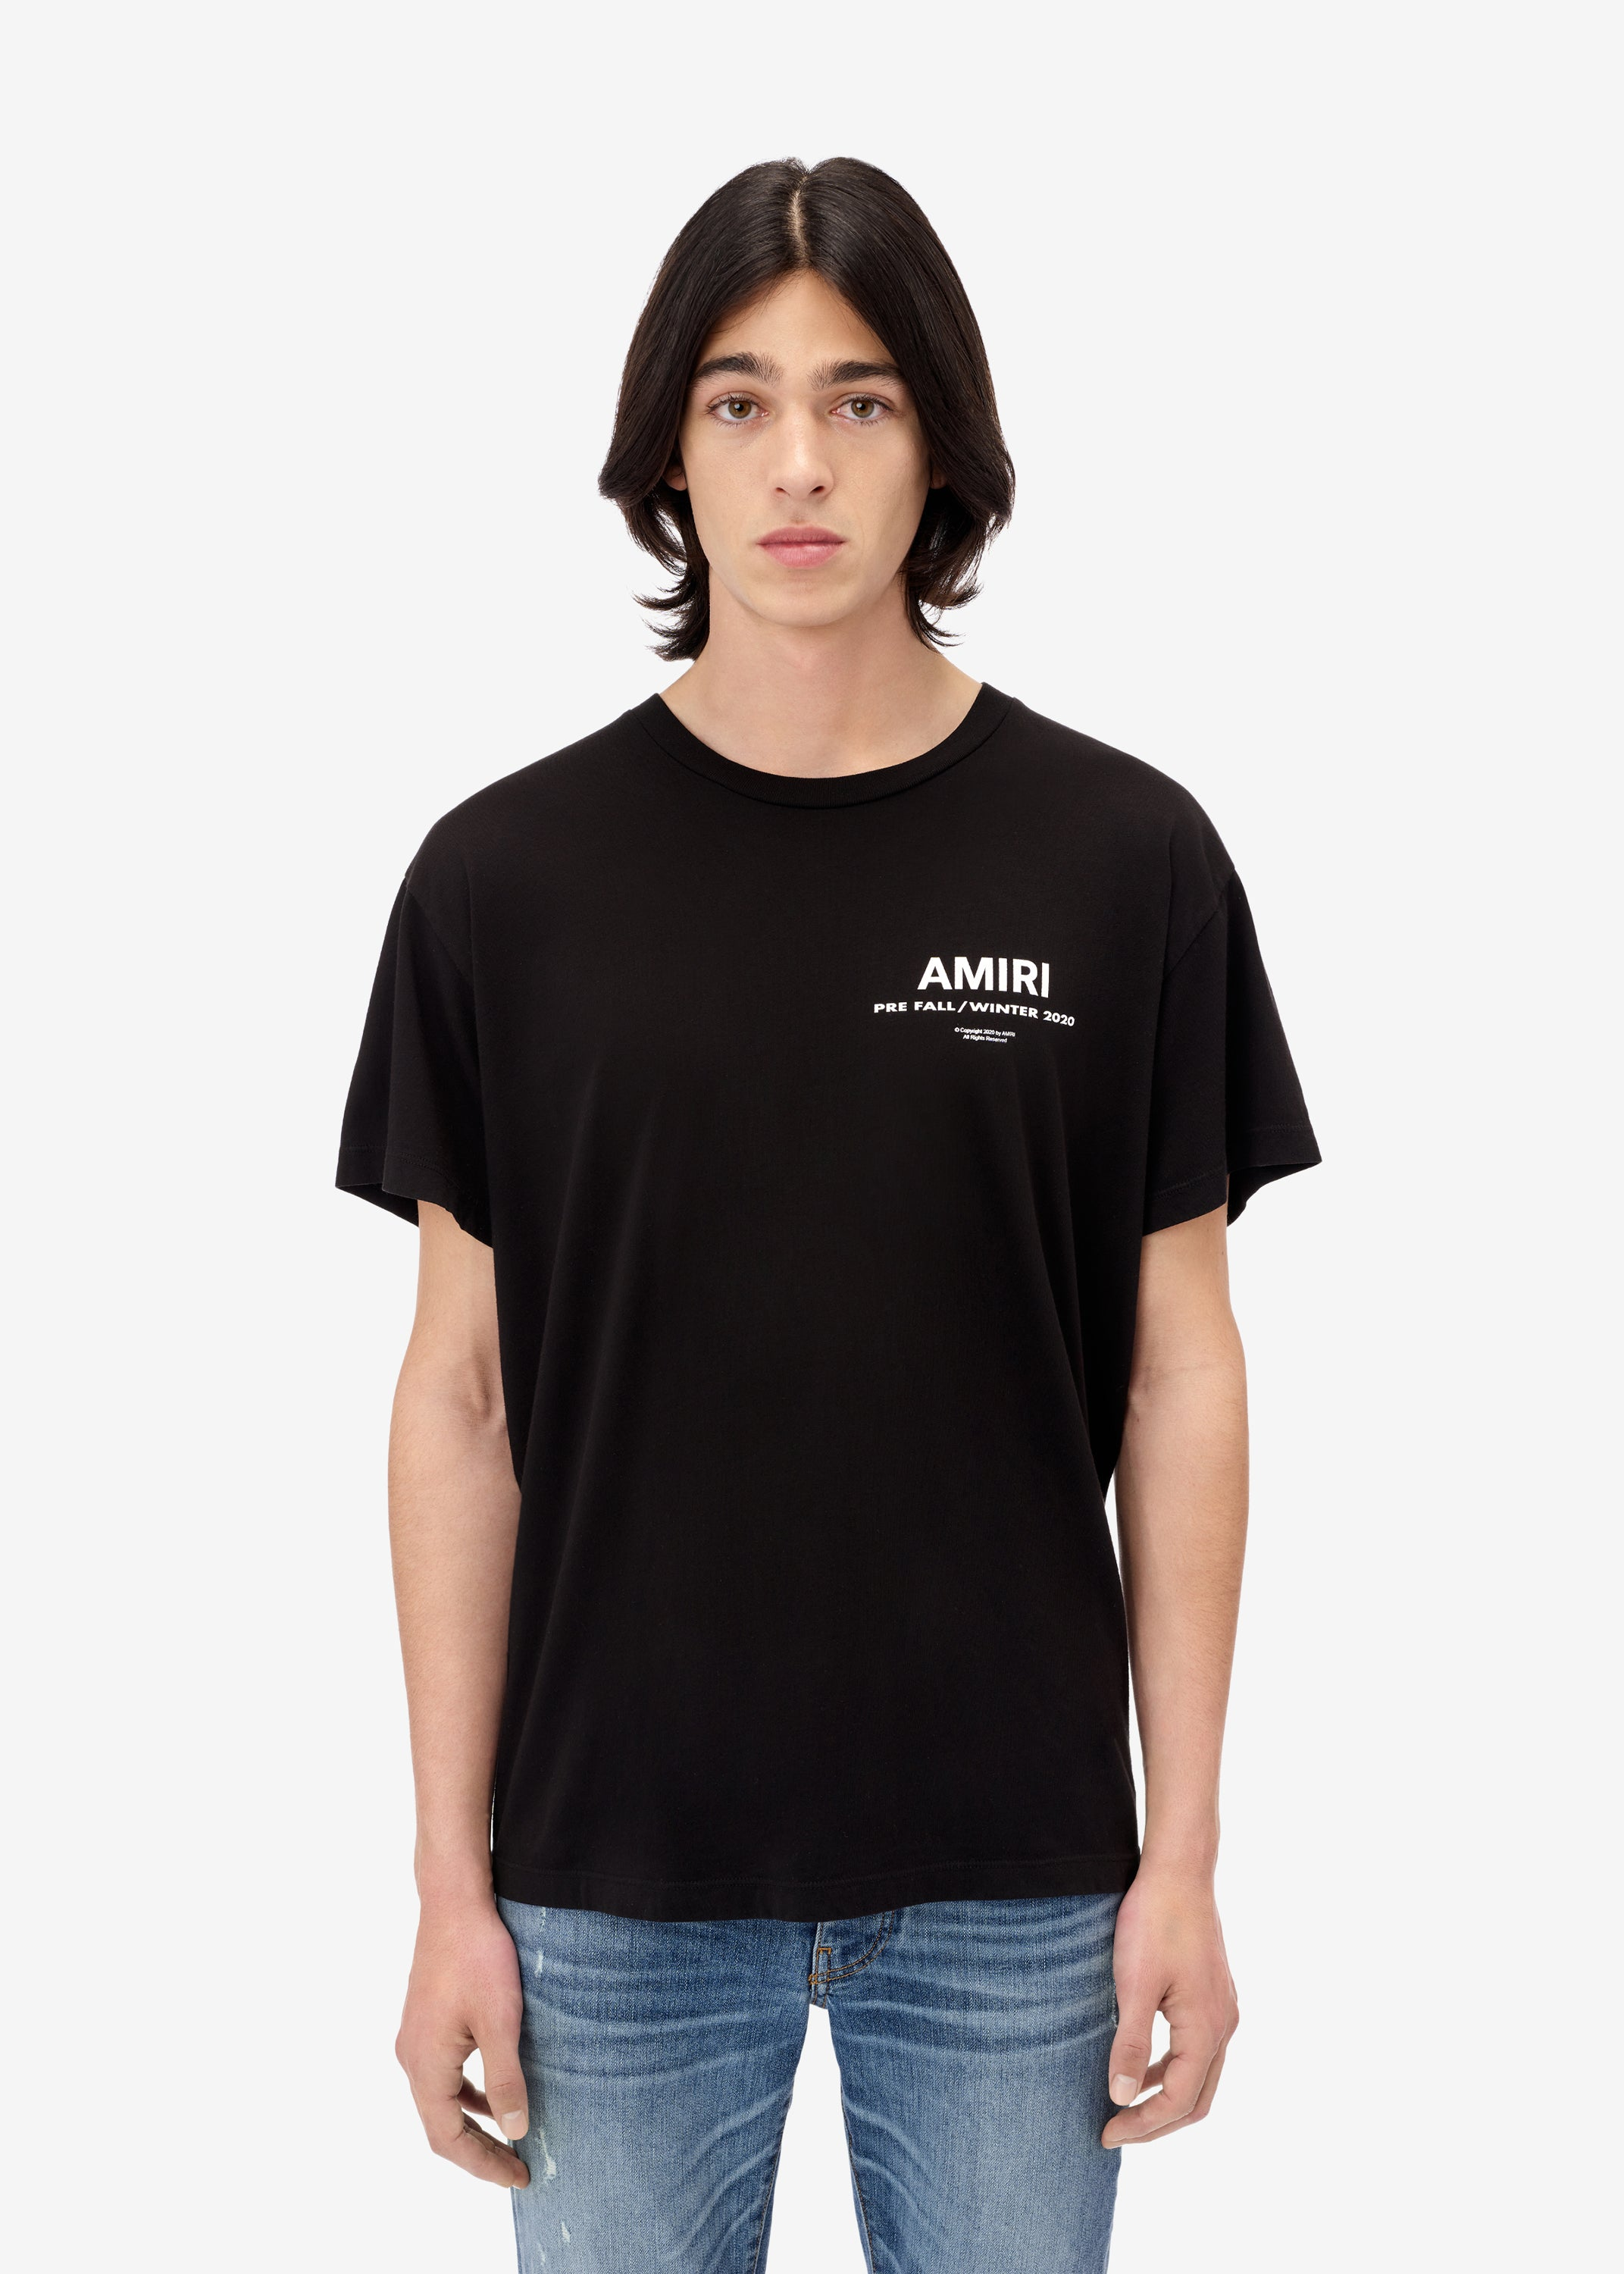 pf20-amiri-tee-web-exclusive-black-image-1